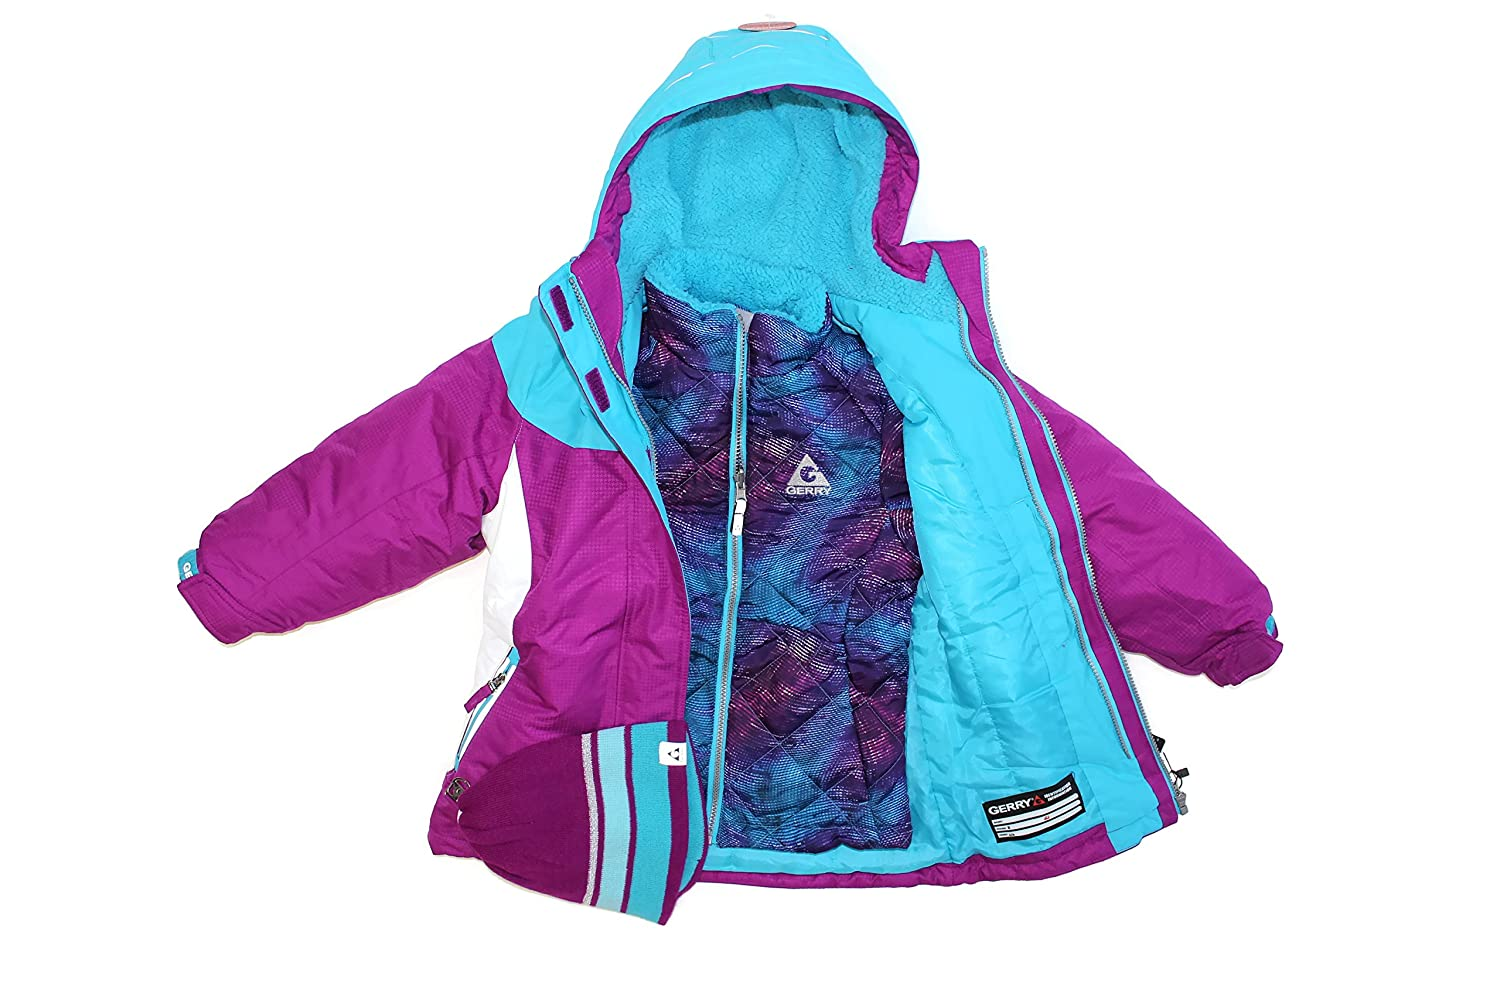 3f75b442110 Amazon.com: Gerry Girls' 3-In-1 Systems Jacket (X-Small, Crystal): Clothing